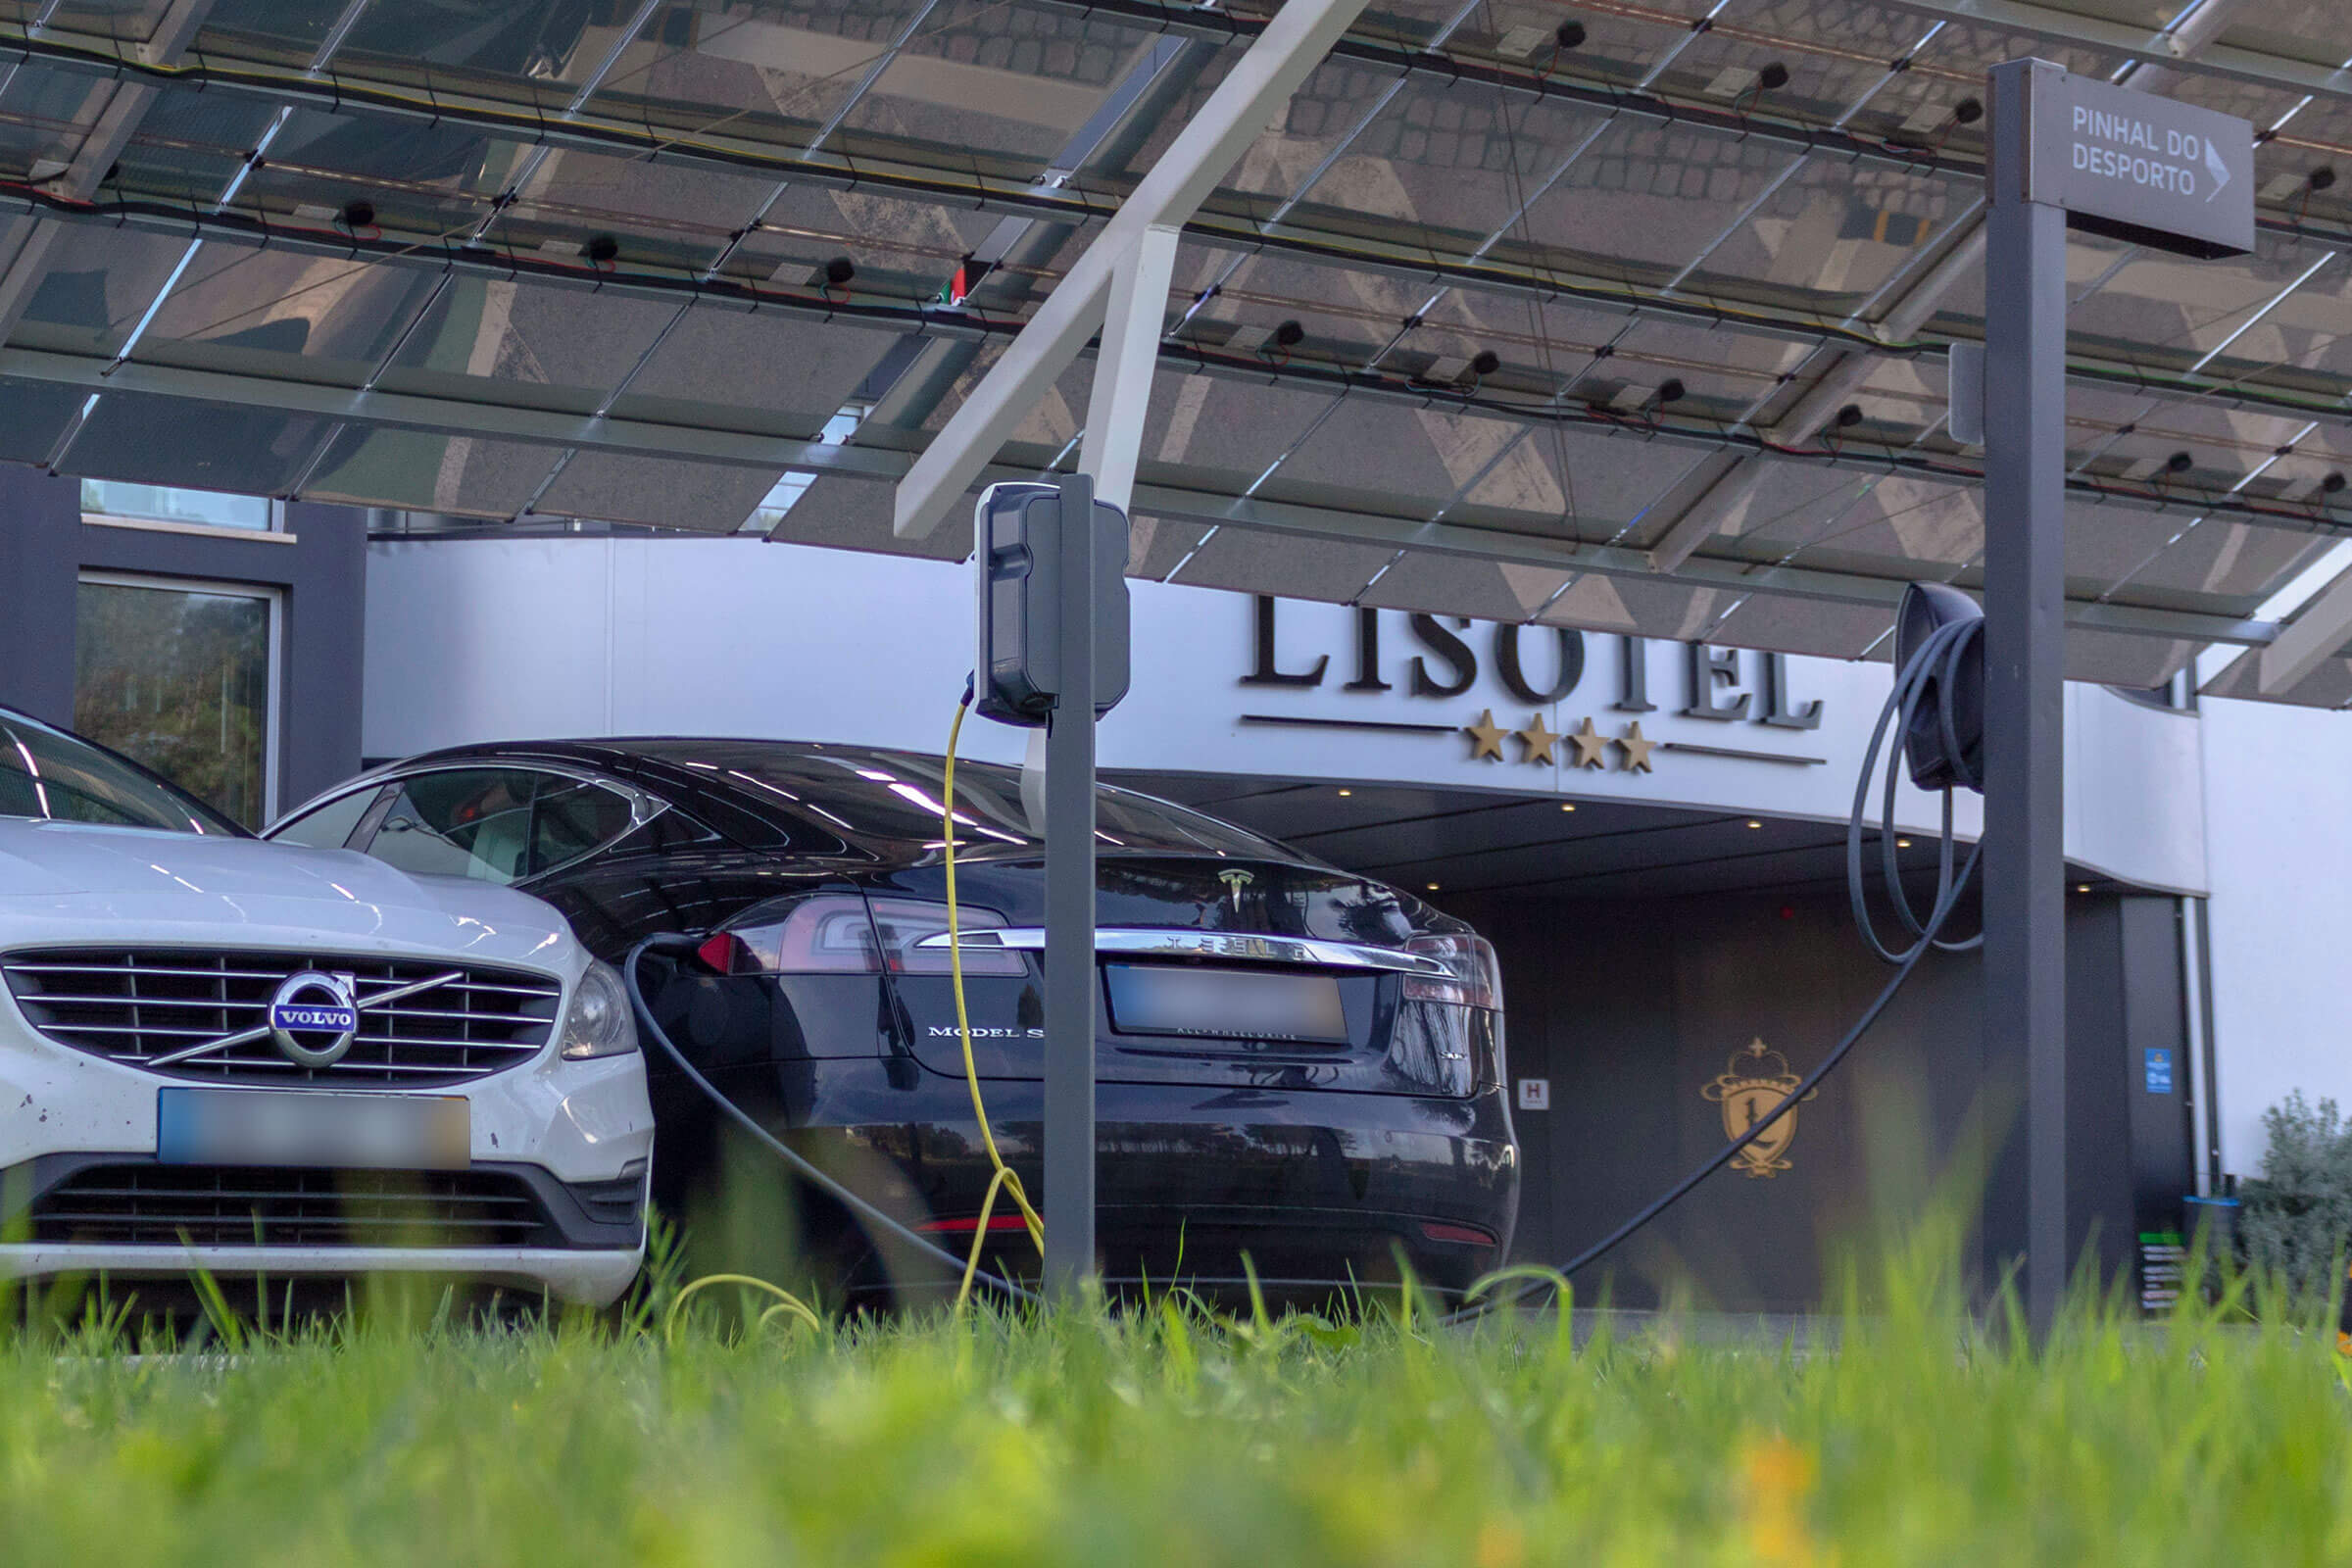 Electric Vehicle Charging Stations - Lisotel Hotel & Spa